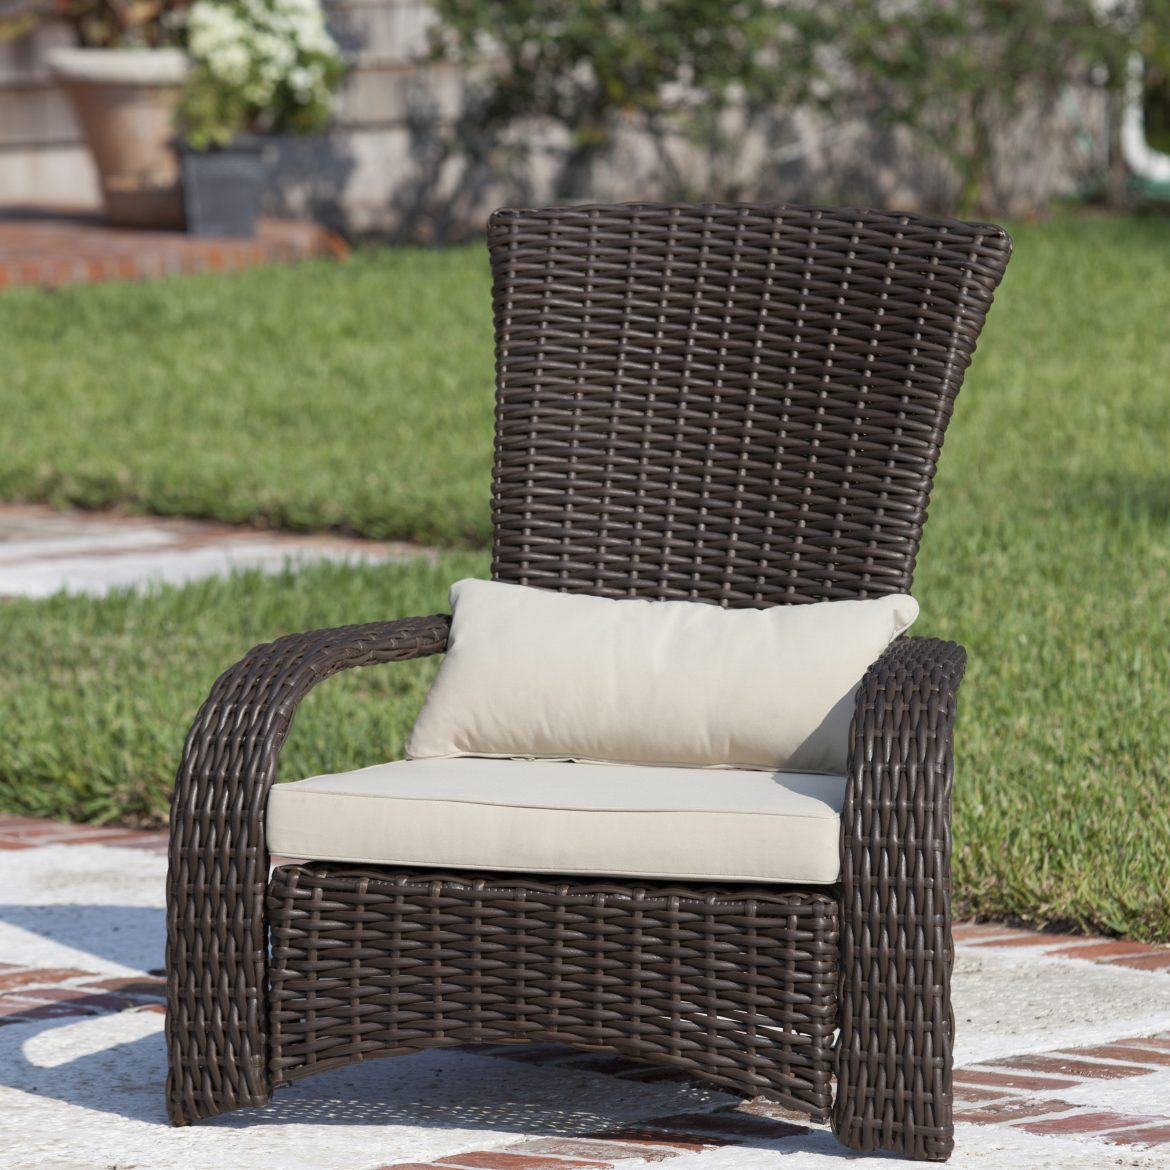 50 Ideas For Choosing The Best Outdoor Wicker Furniture Photos Furniture Outdoor Wicker Furniture Outdoor Chairs Wicker Patio Chairs